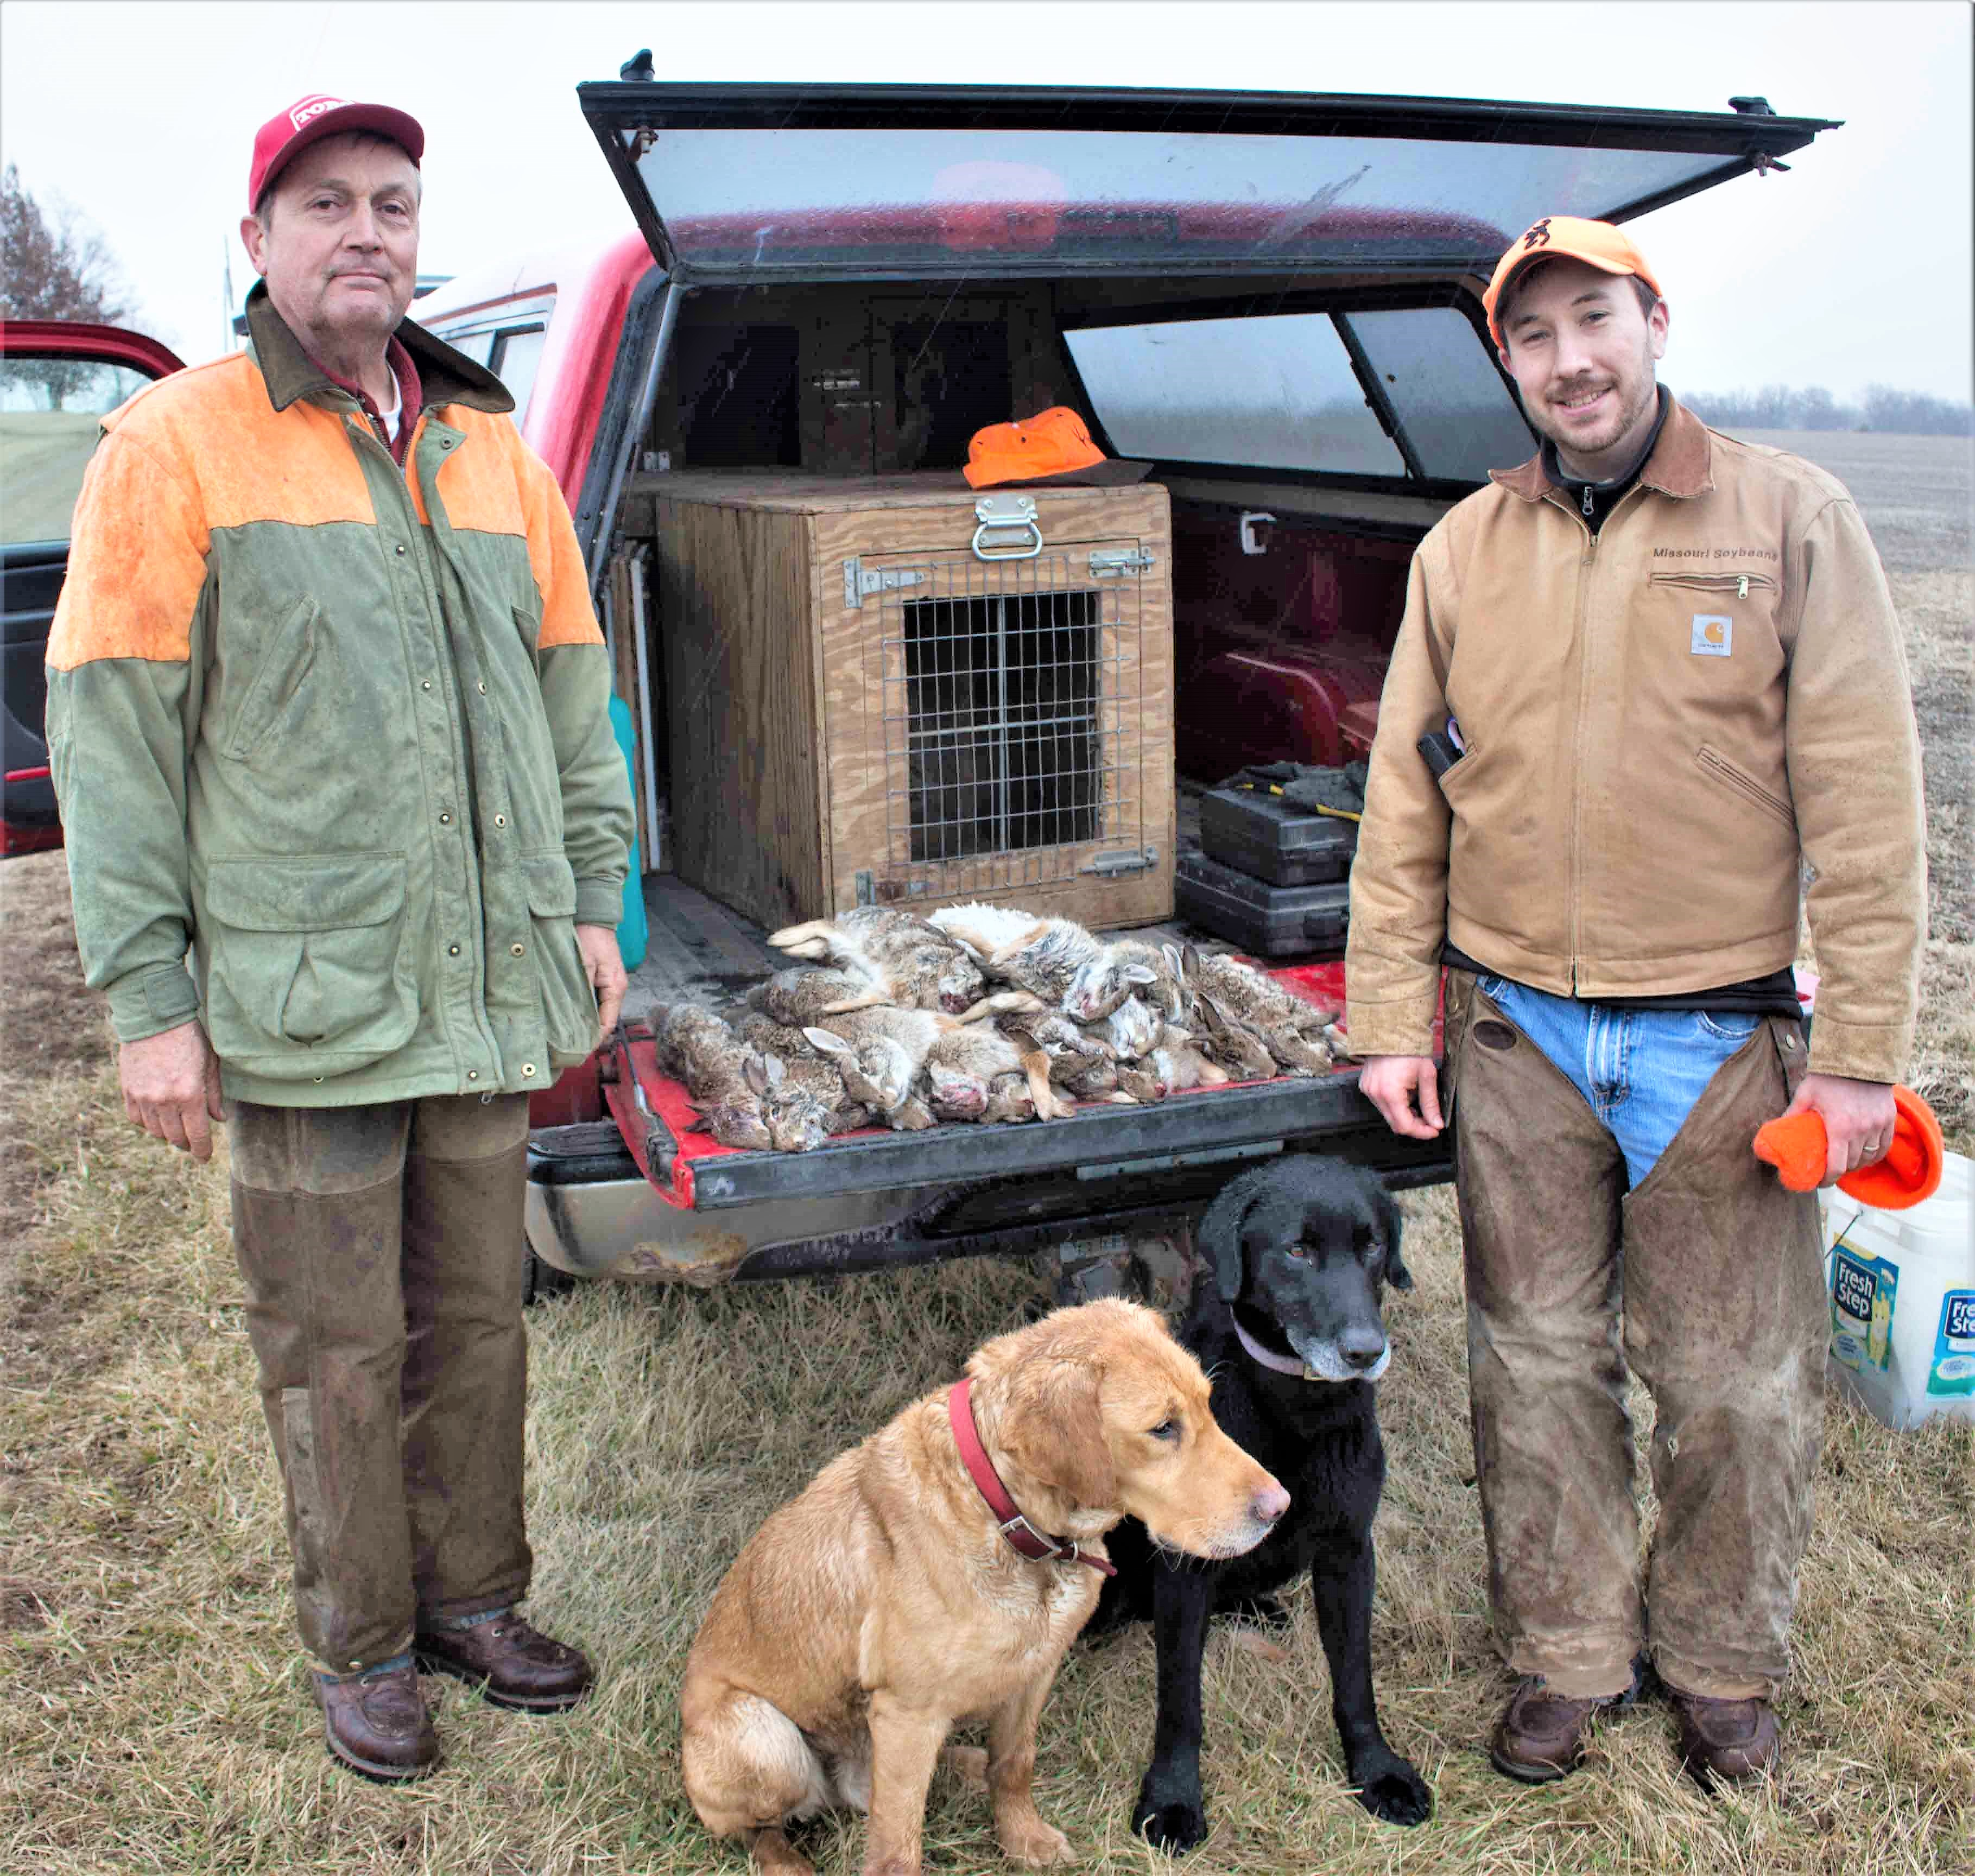 Dogs, Rabbits and Smith & Wesson